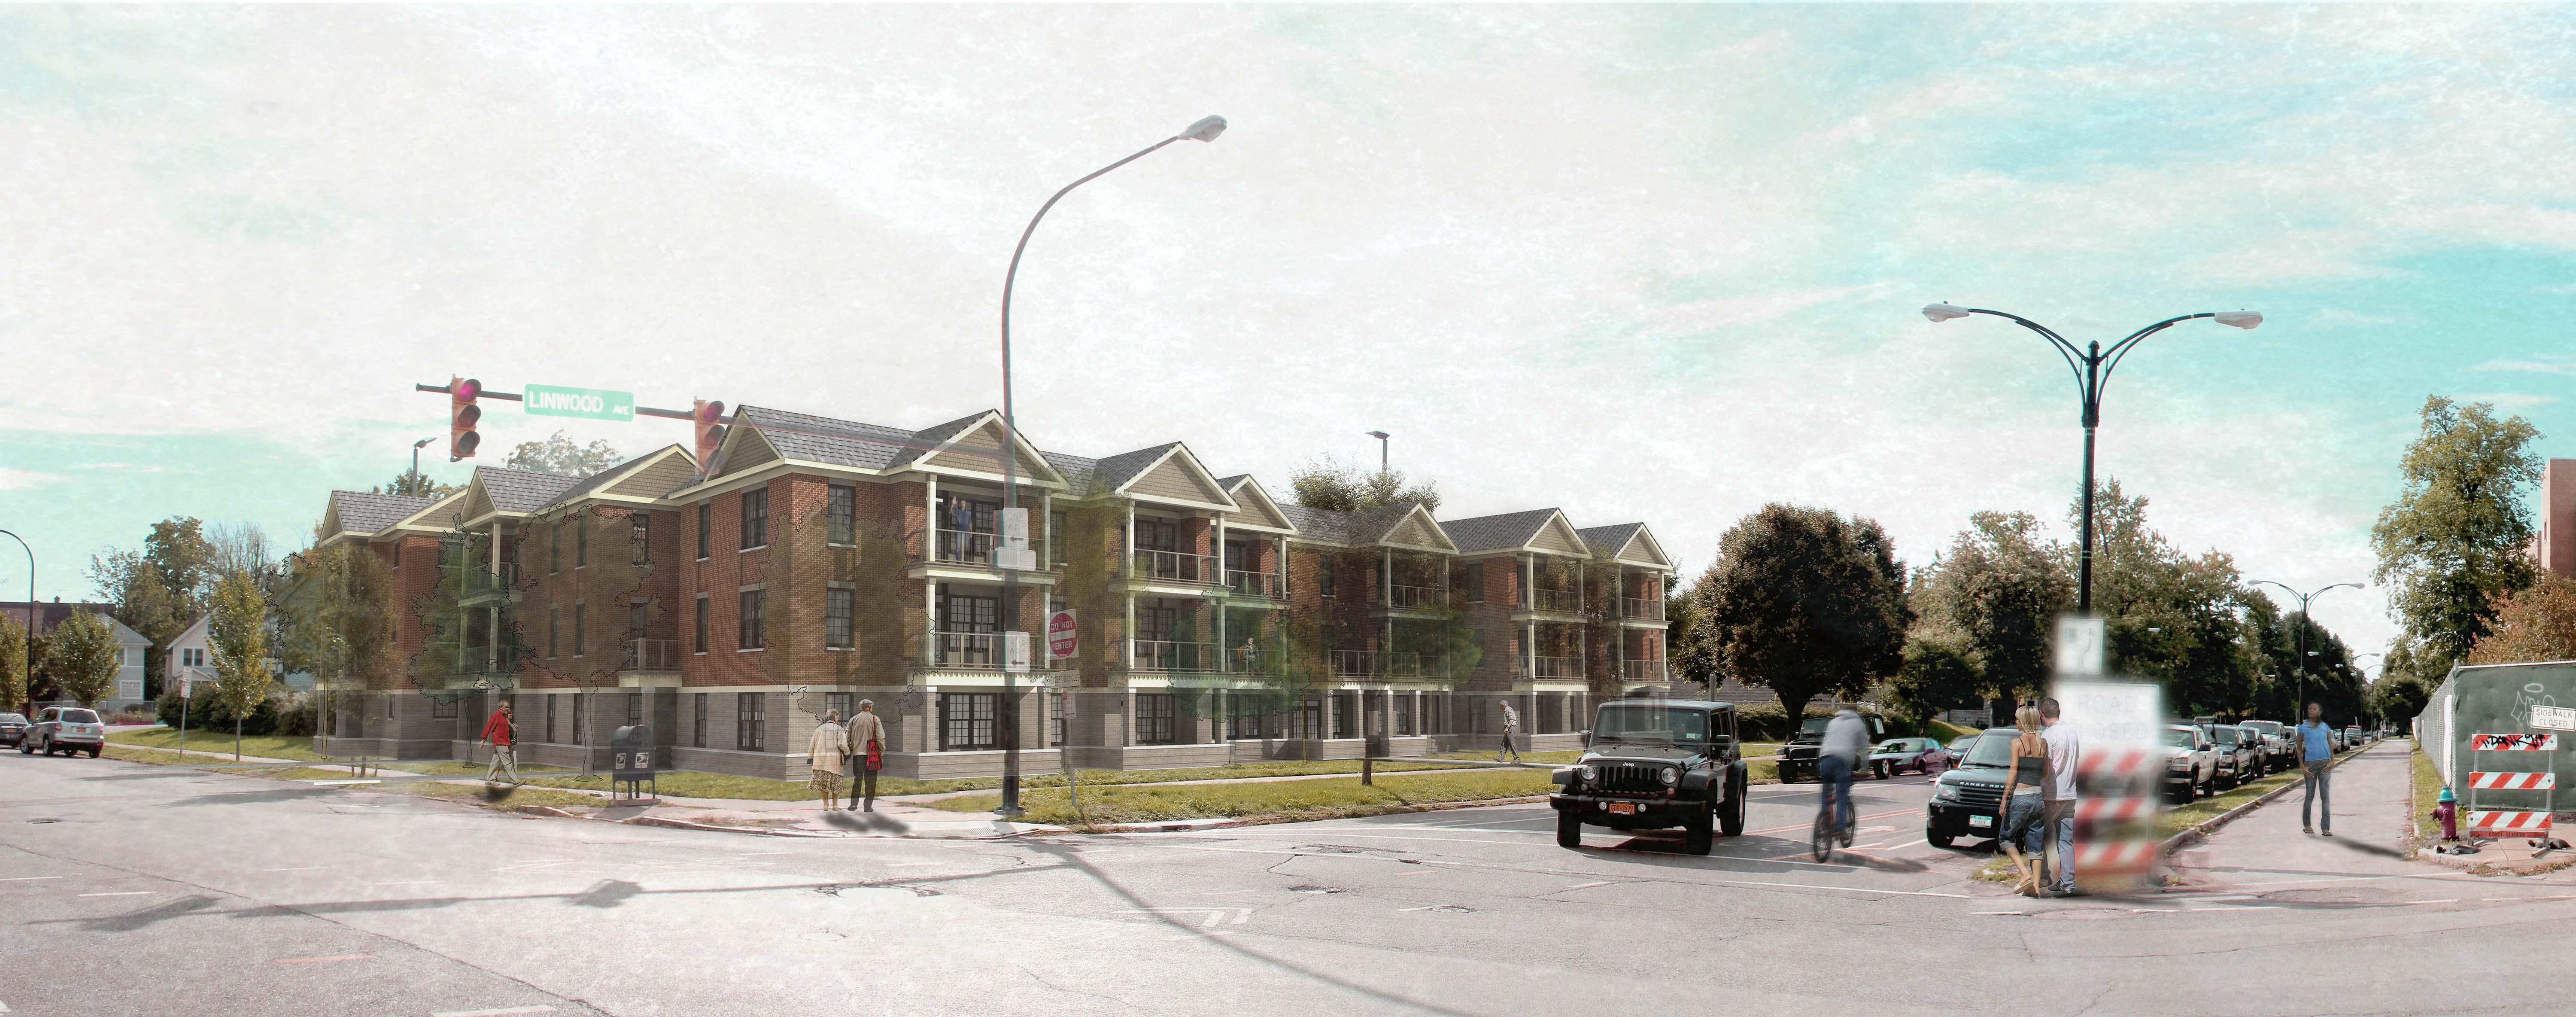 Rendering of People Inc. project at Gates Circle.